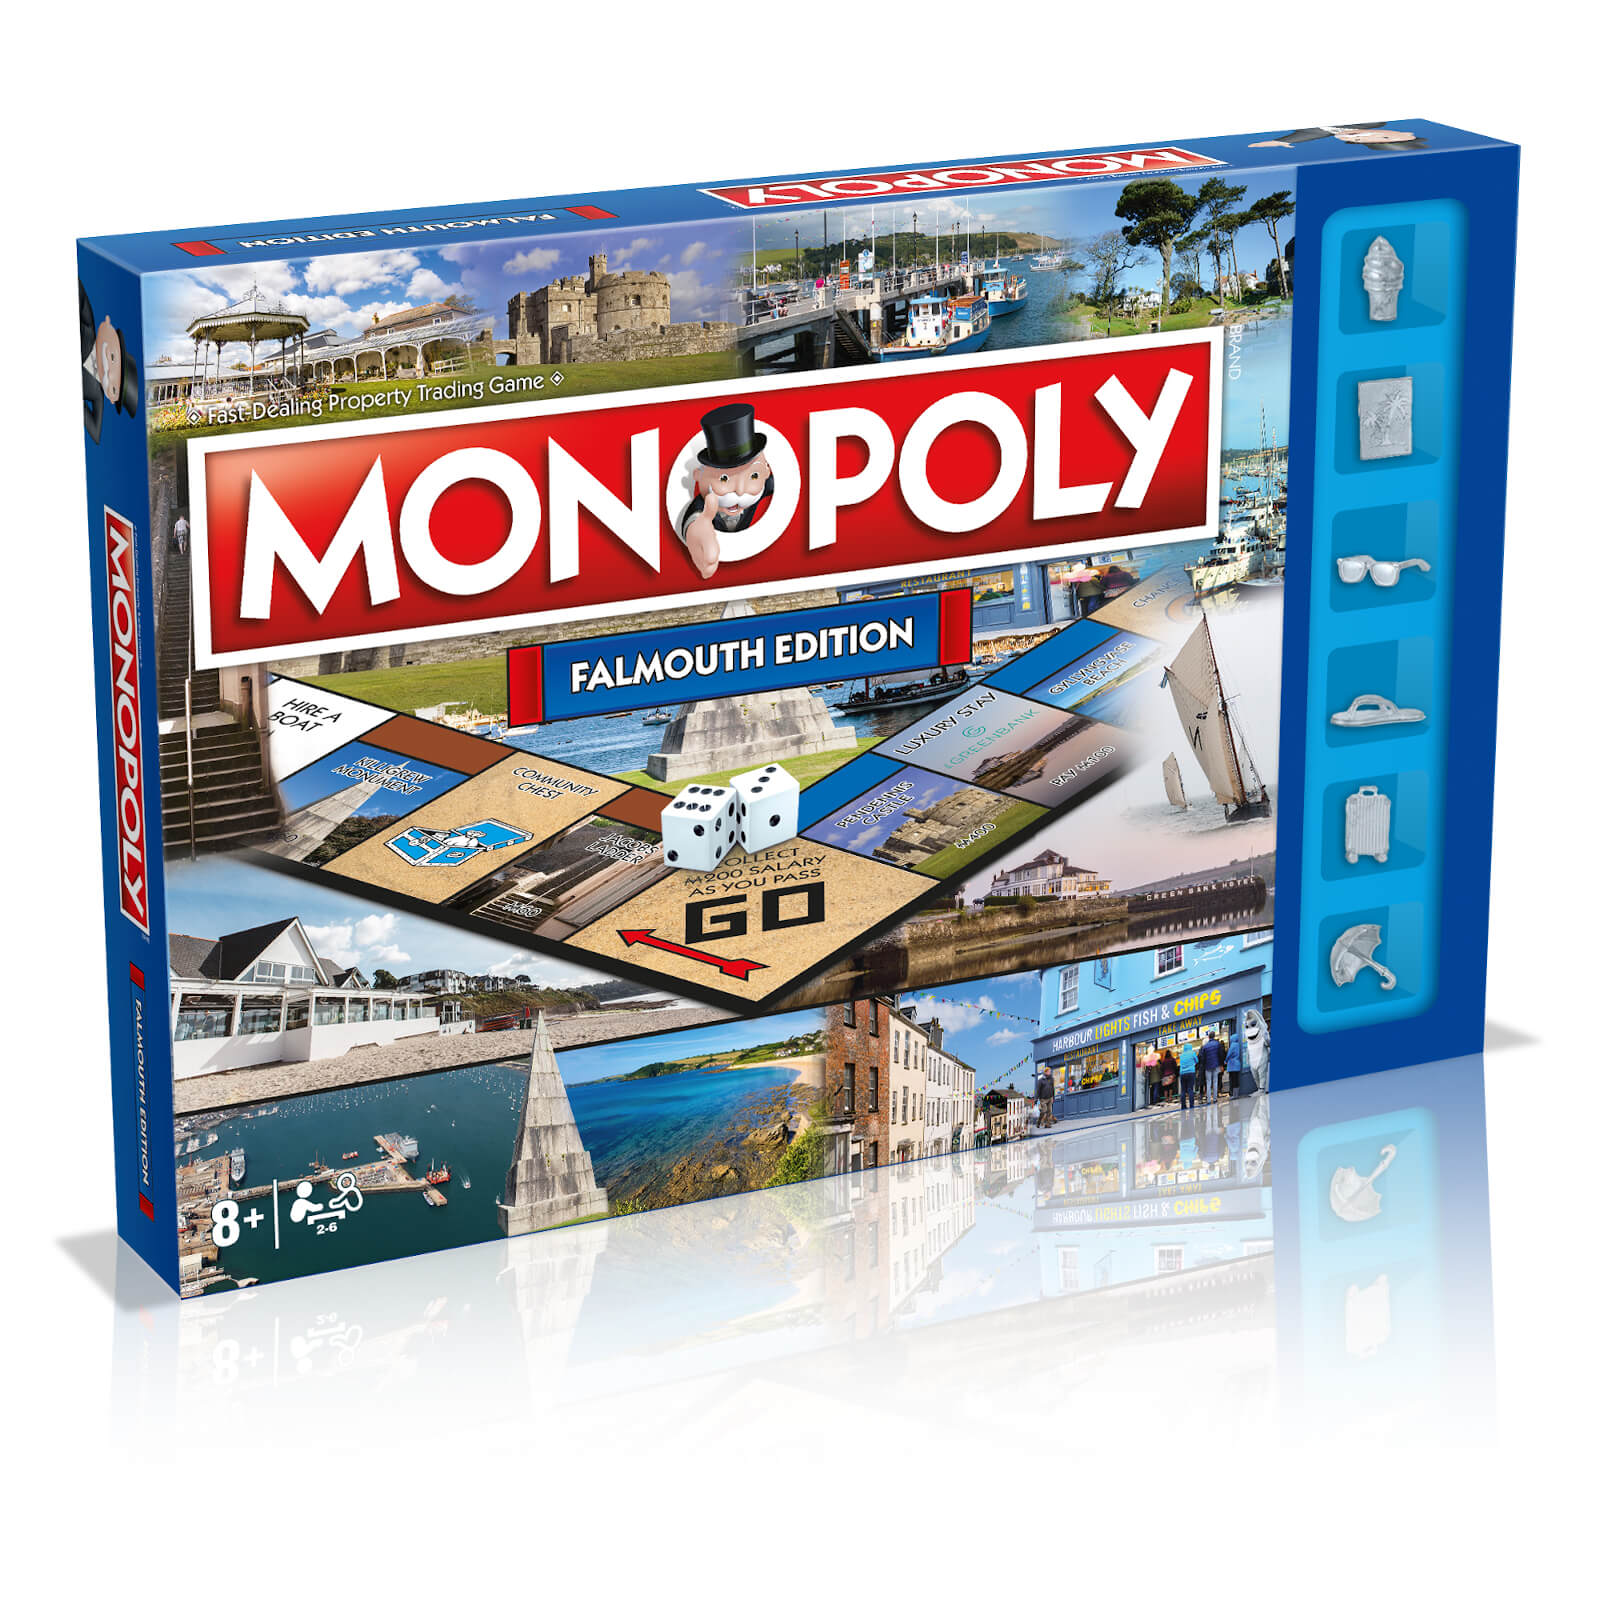 Image of Monopoly Board Game - Falmouth Edition